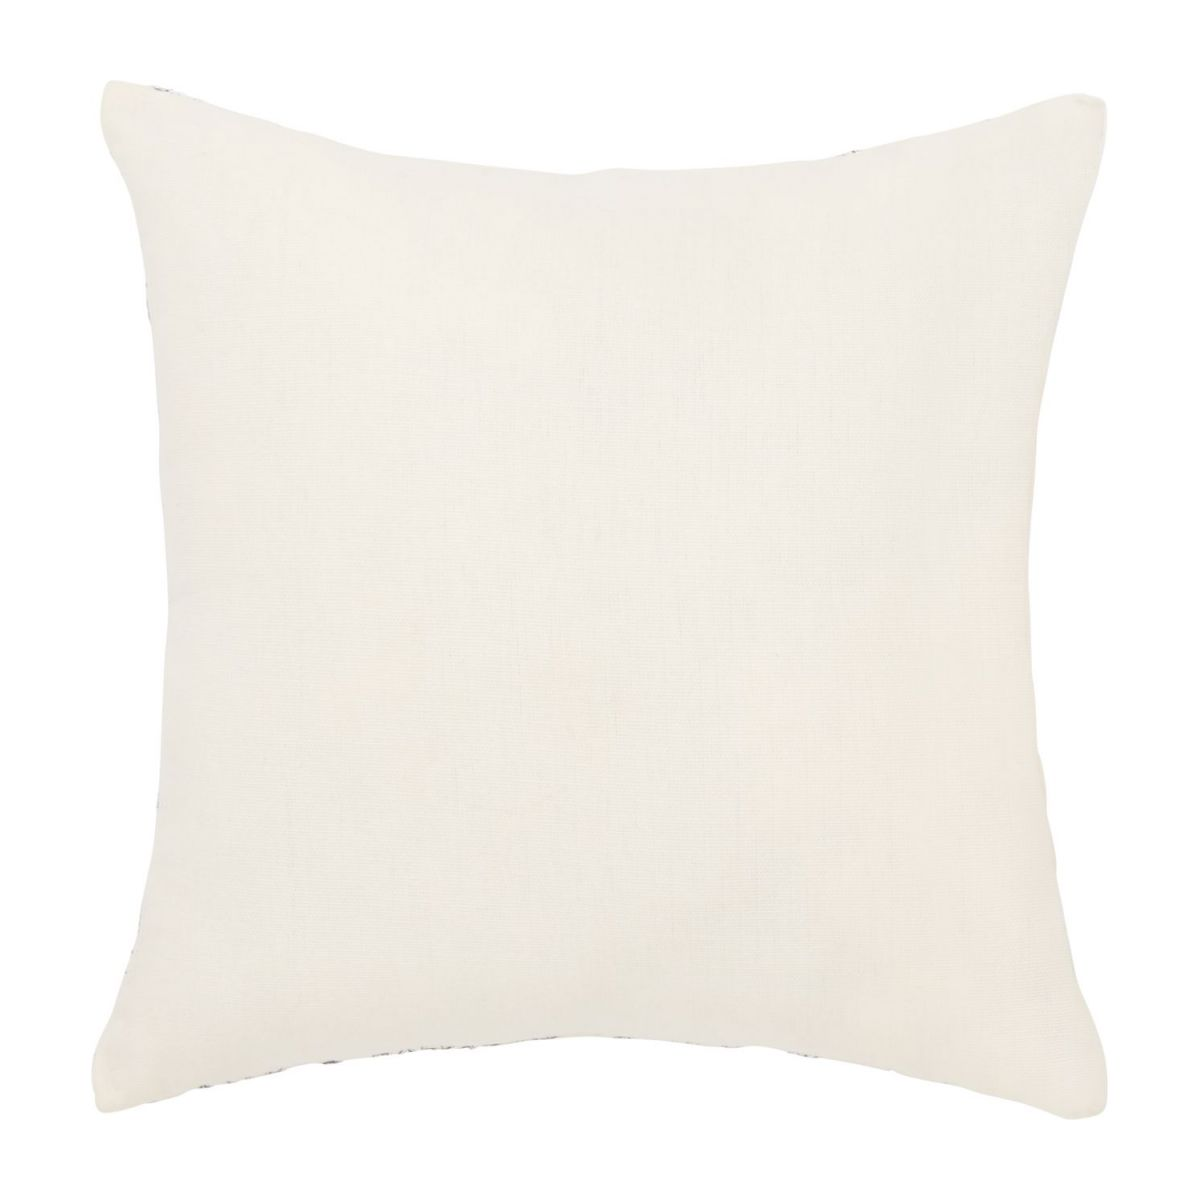 Coussin 30x30 broderie bleue n°3